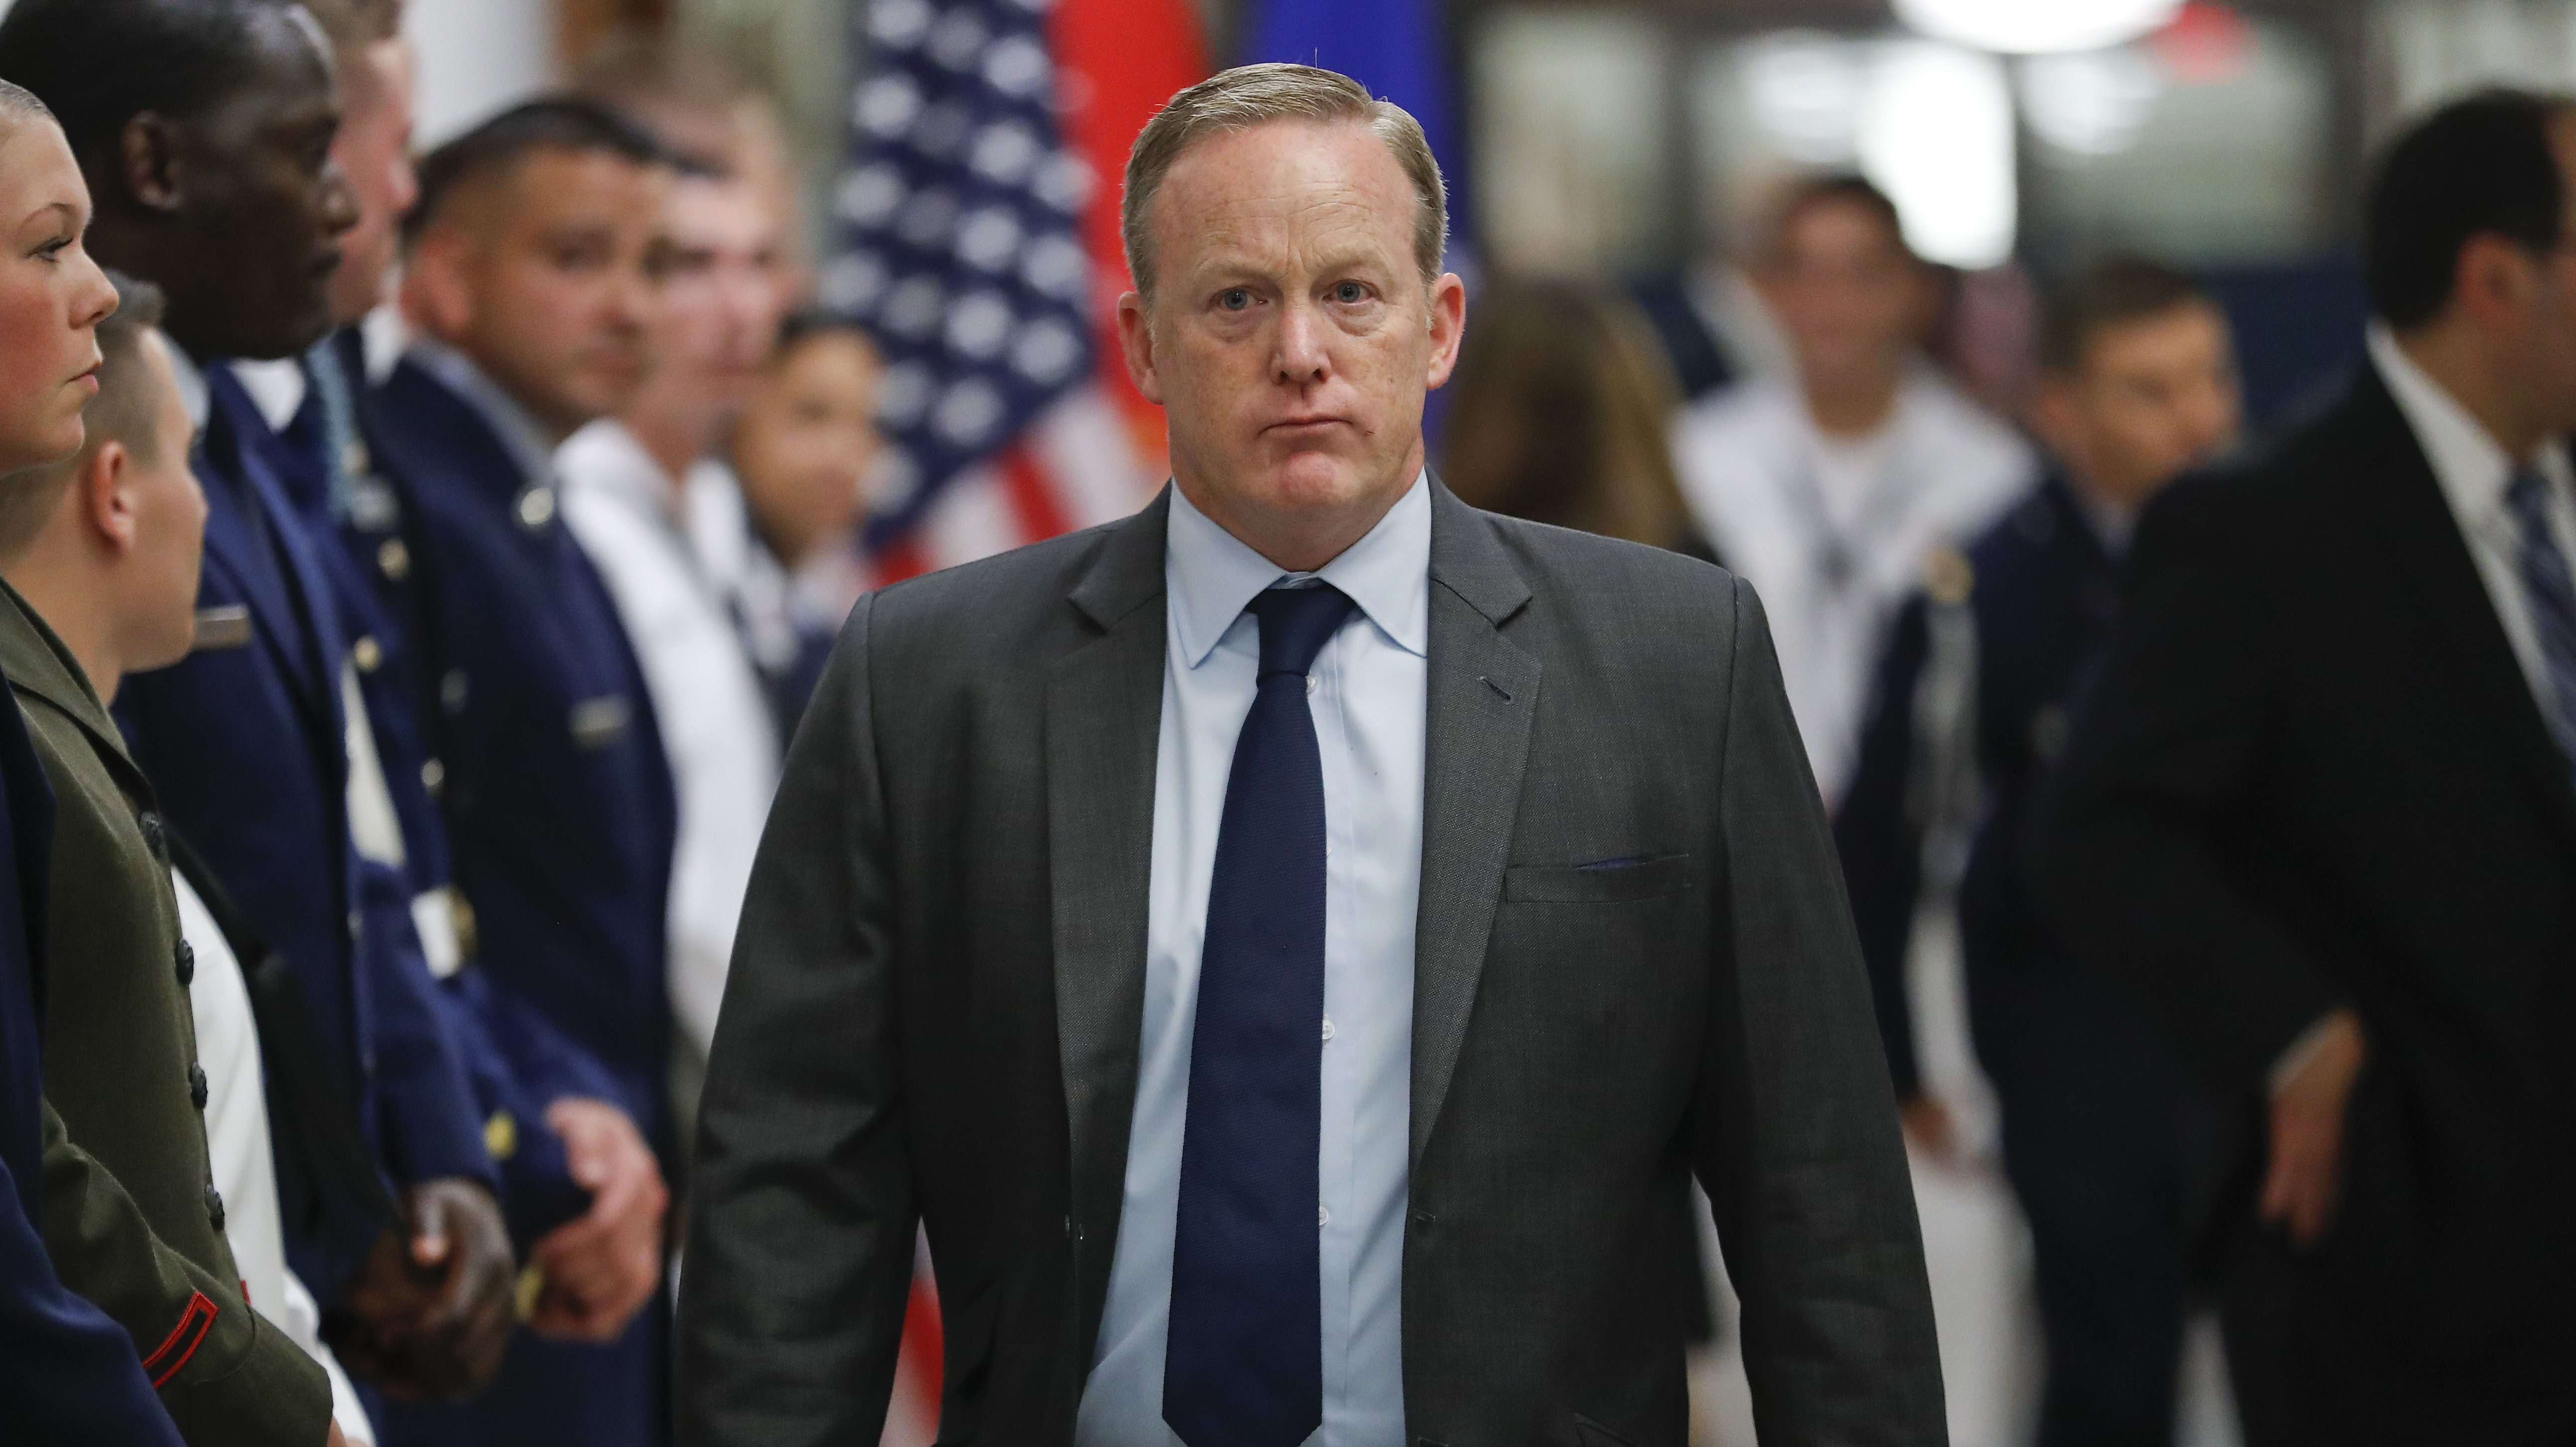 White House press secretary Sean Spicer walks down the hallway during President Donald Trump's visit to the Pentagon, Thursday, July 20, 2017.   White House Press Secretary Sean Spicer has resigned over hiring of new communications aide.  (AP Photo/Pablo Martinez Monsivais)